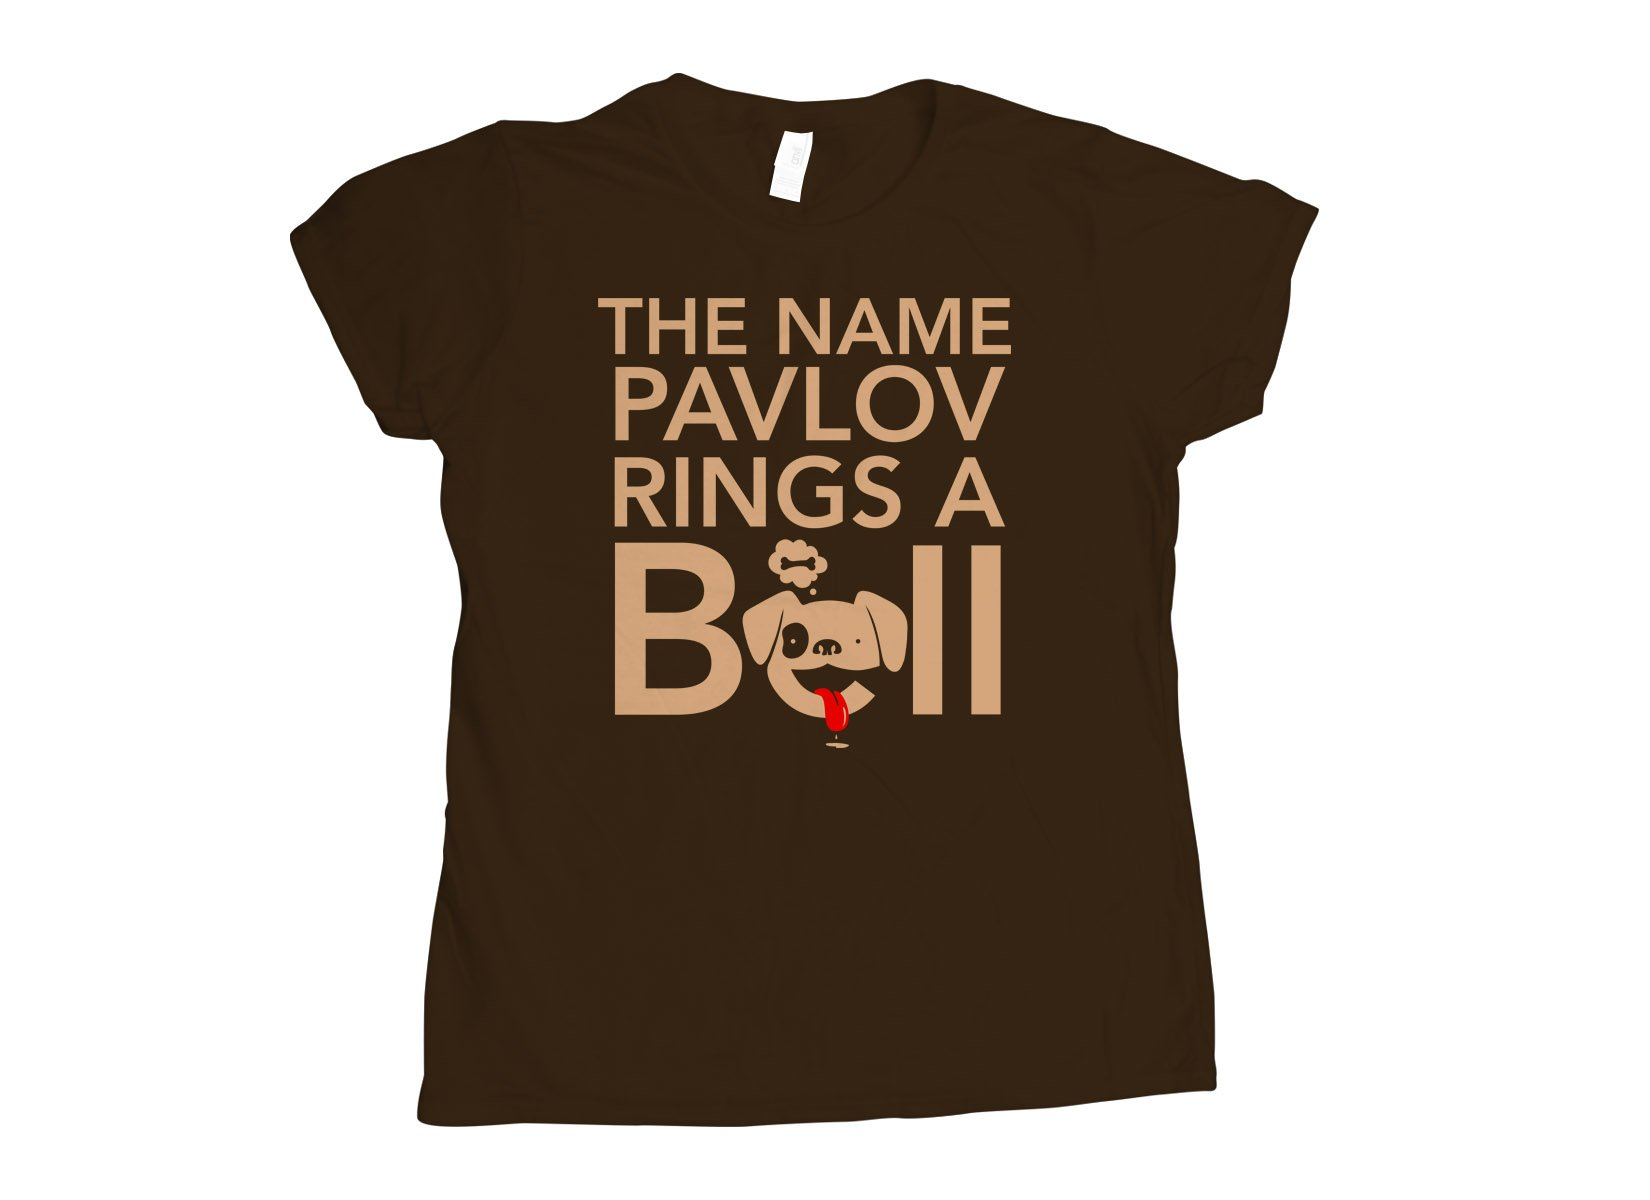 The Name Pavlov Rings A Bell on Womens T-Shirt